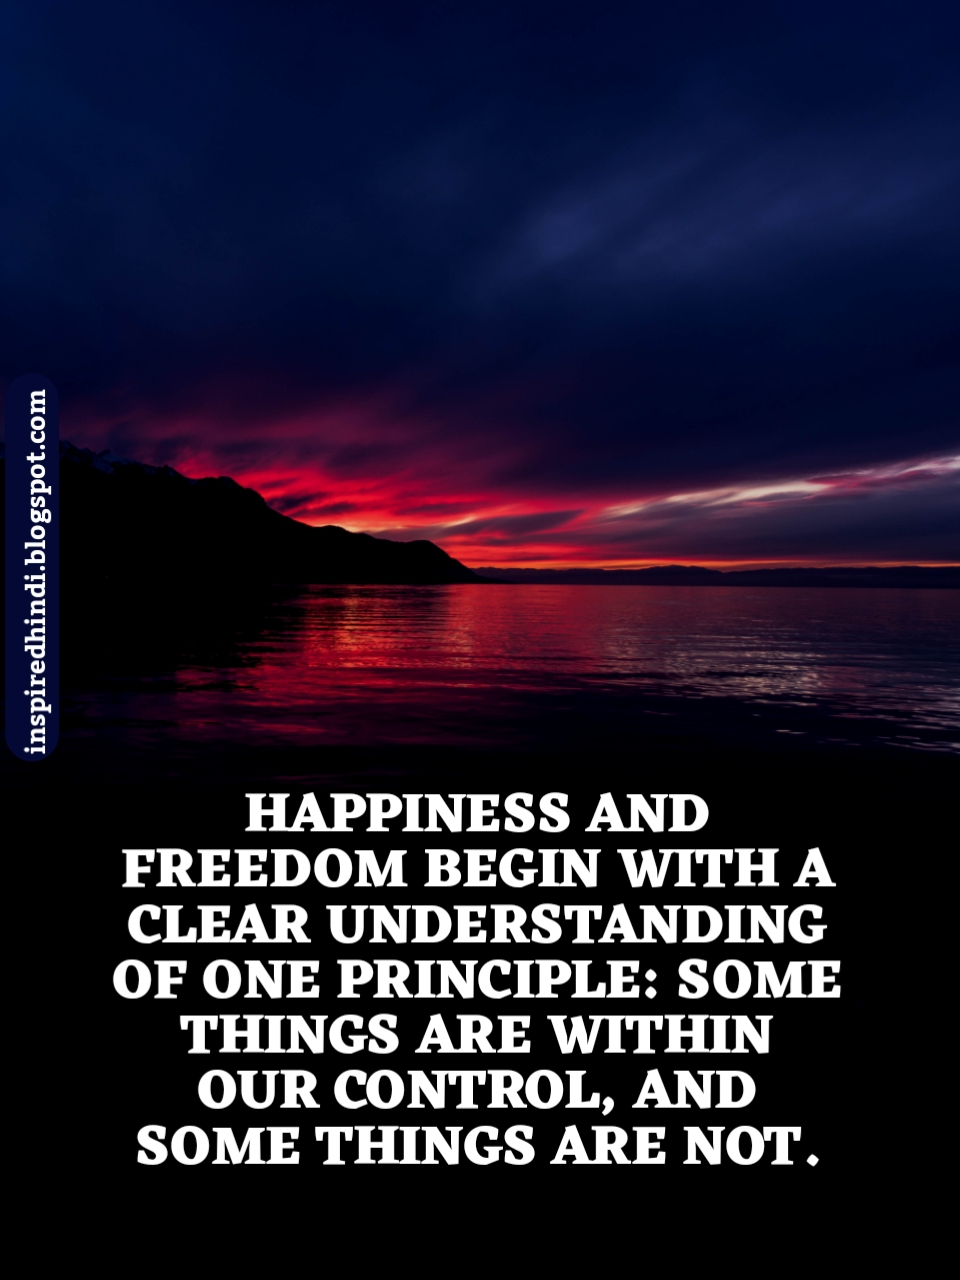 HAPPINESS AND FREEDOM BEGIN WITH A CLEAR UNDERSTANDING OF ONE PRINCIPLE: SOMETHINGS ARE WITHIN OUR CONTROL, AND SOME THINGS ARE NOT.